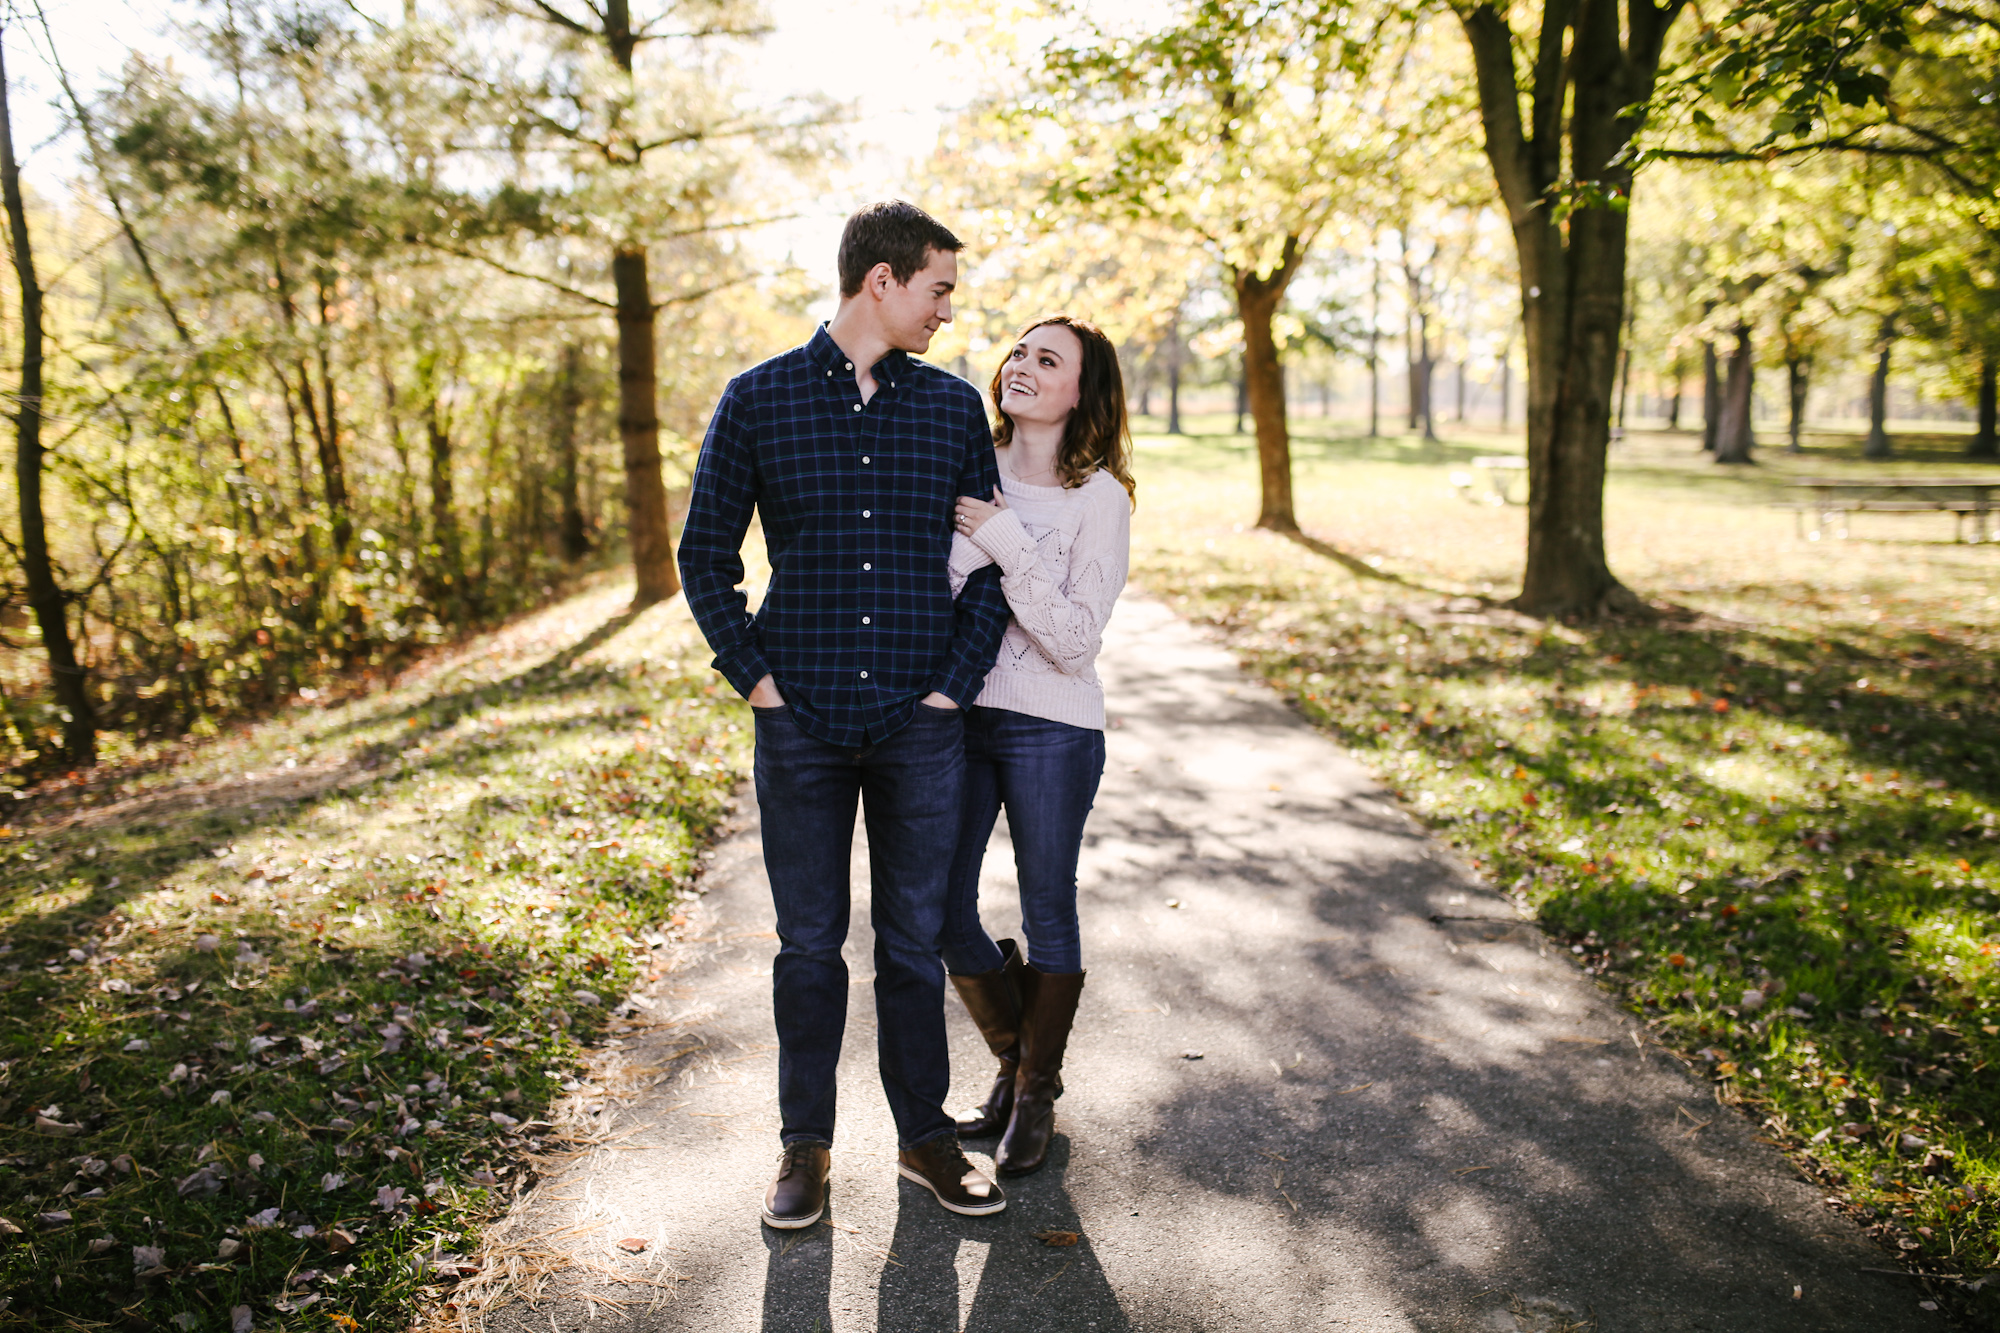 alex and Lauren Engaged preview-3.jpg